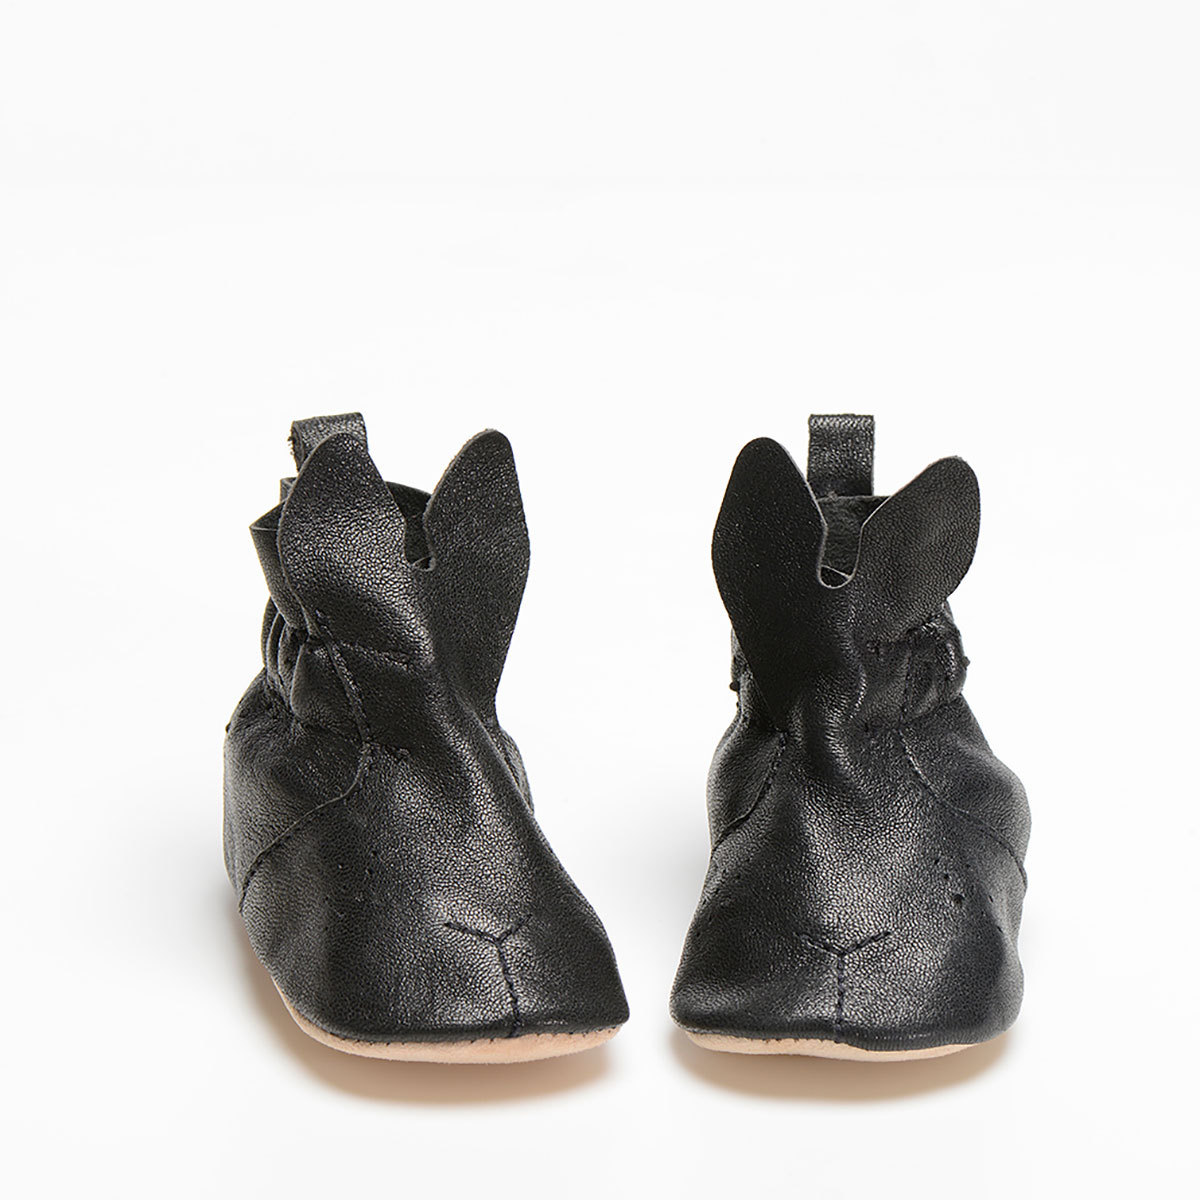 Chaussons & Chaussures Chaussures Lilou Black - Taille 22 Chaussures Lilou Black - Taille 22